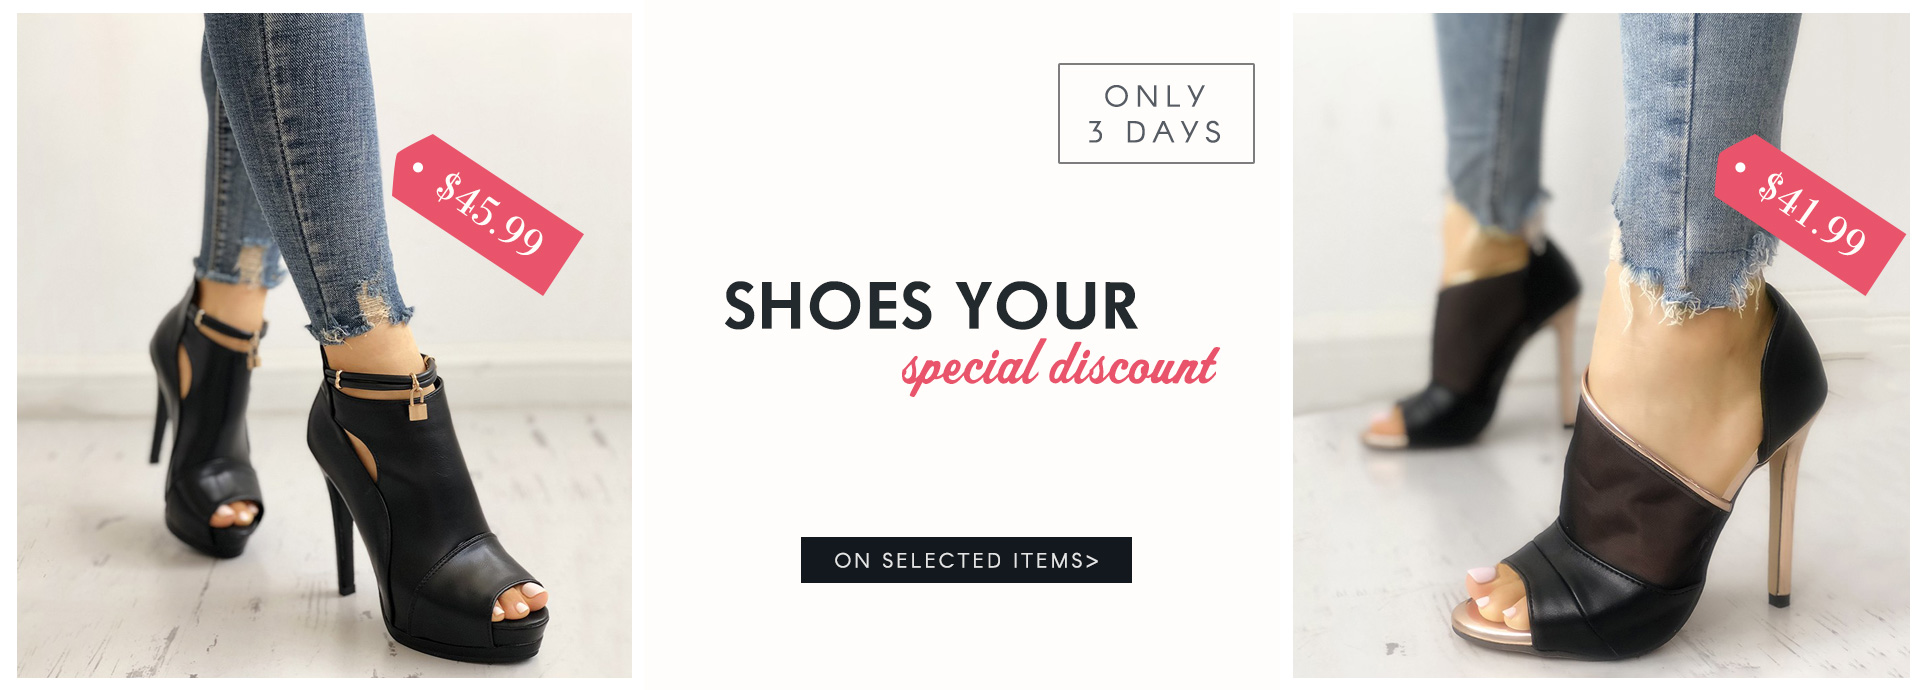 Shoes Your Special Discount